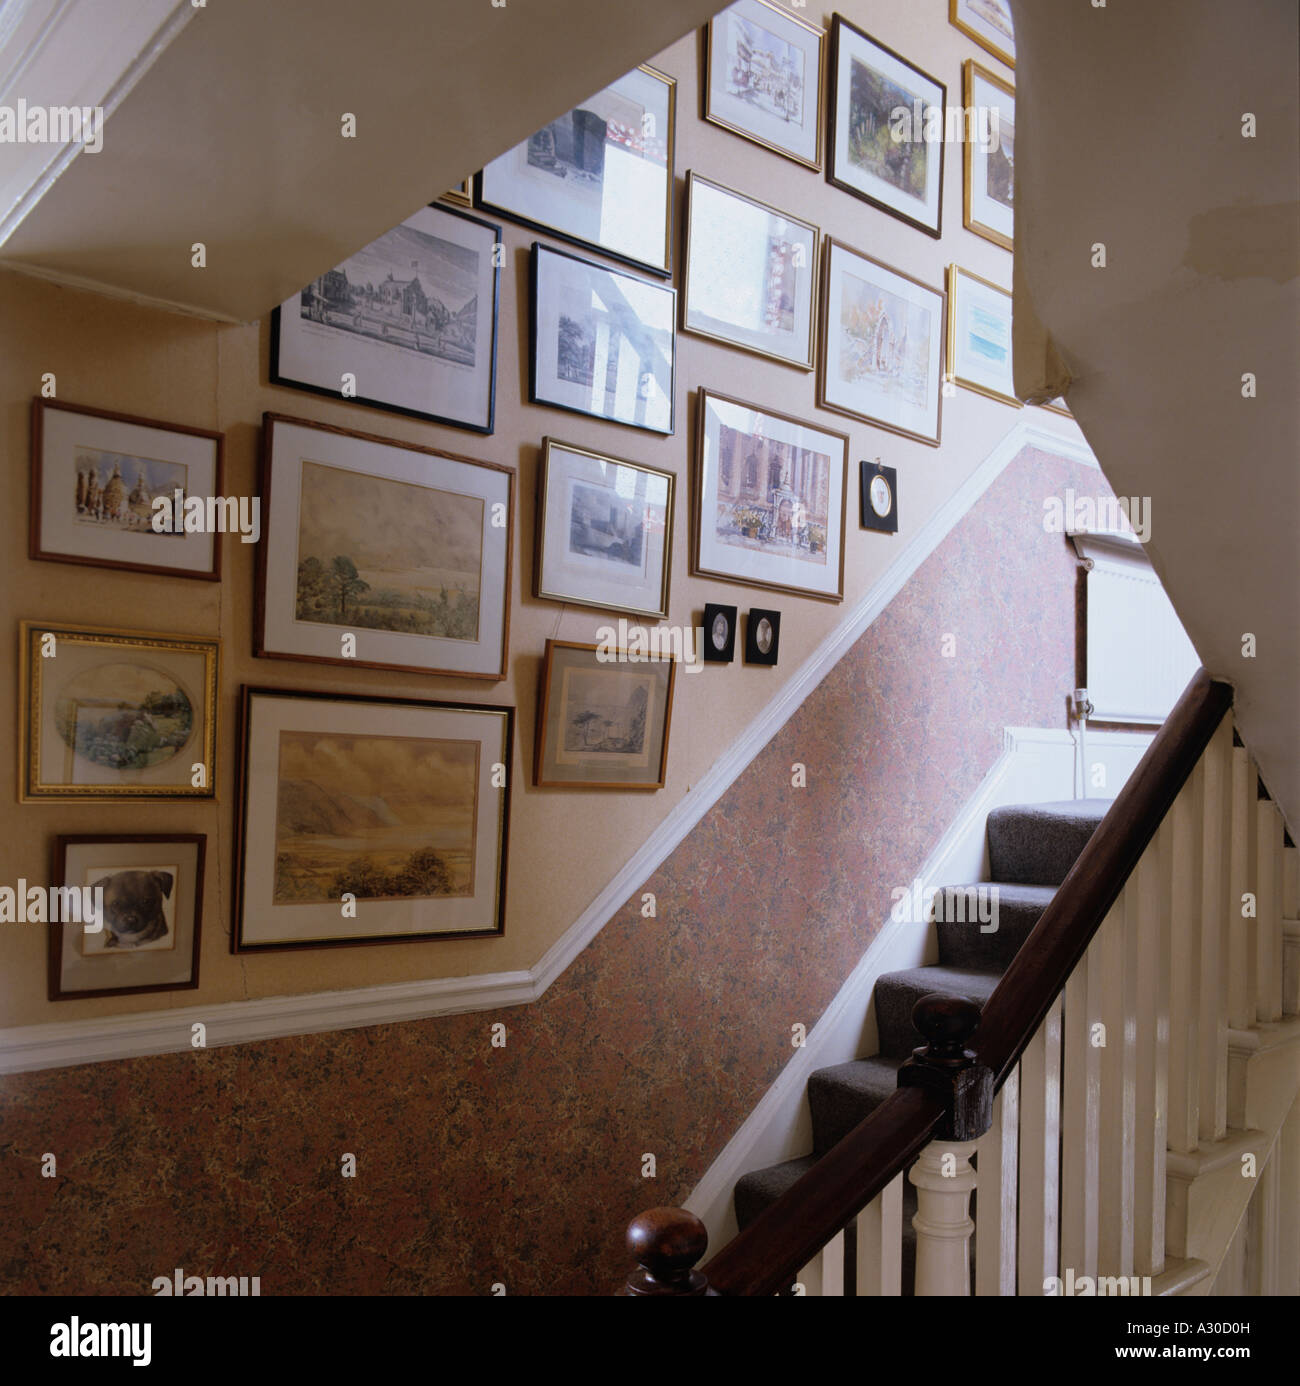 Staircase and wall of pictures and artwork - Stock Image